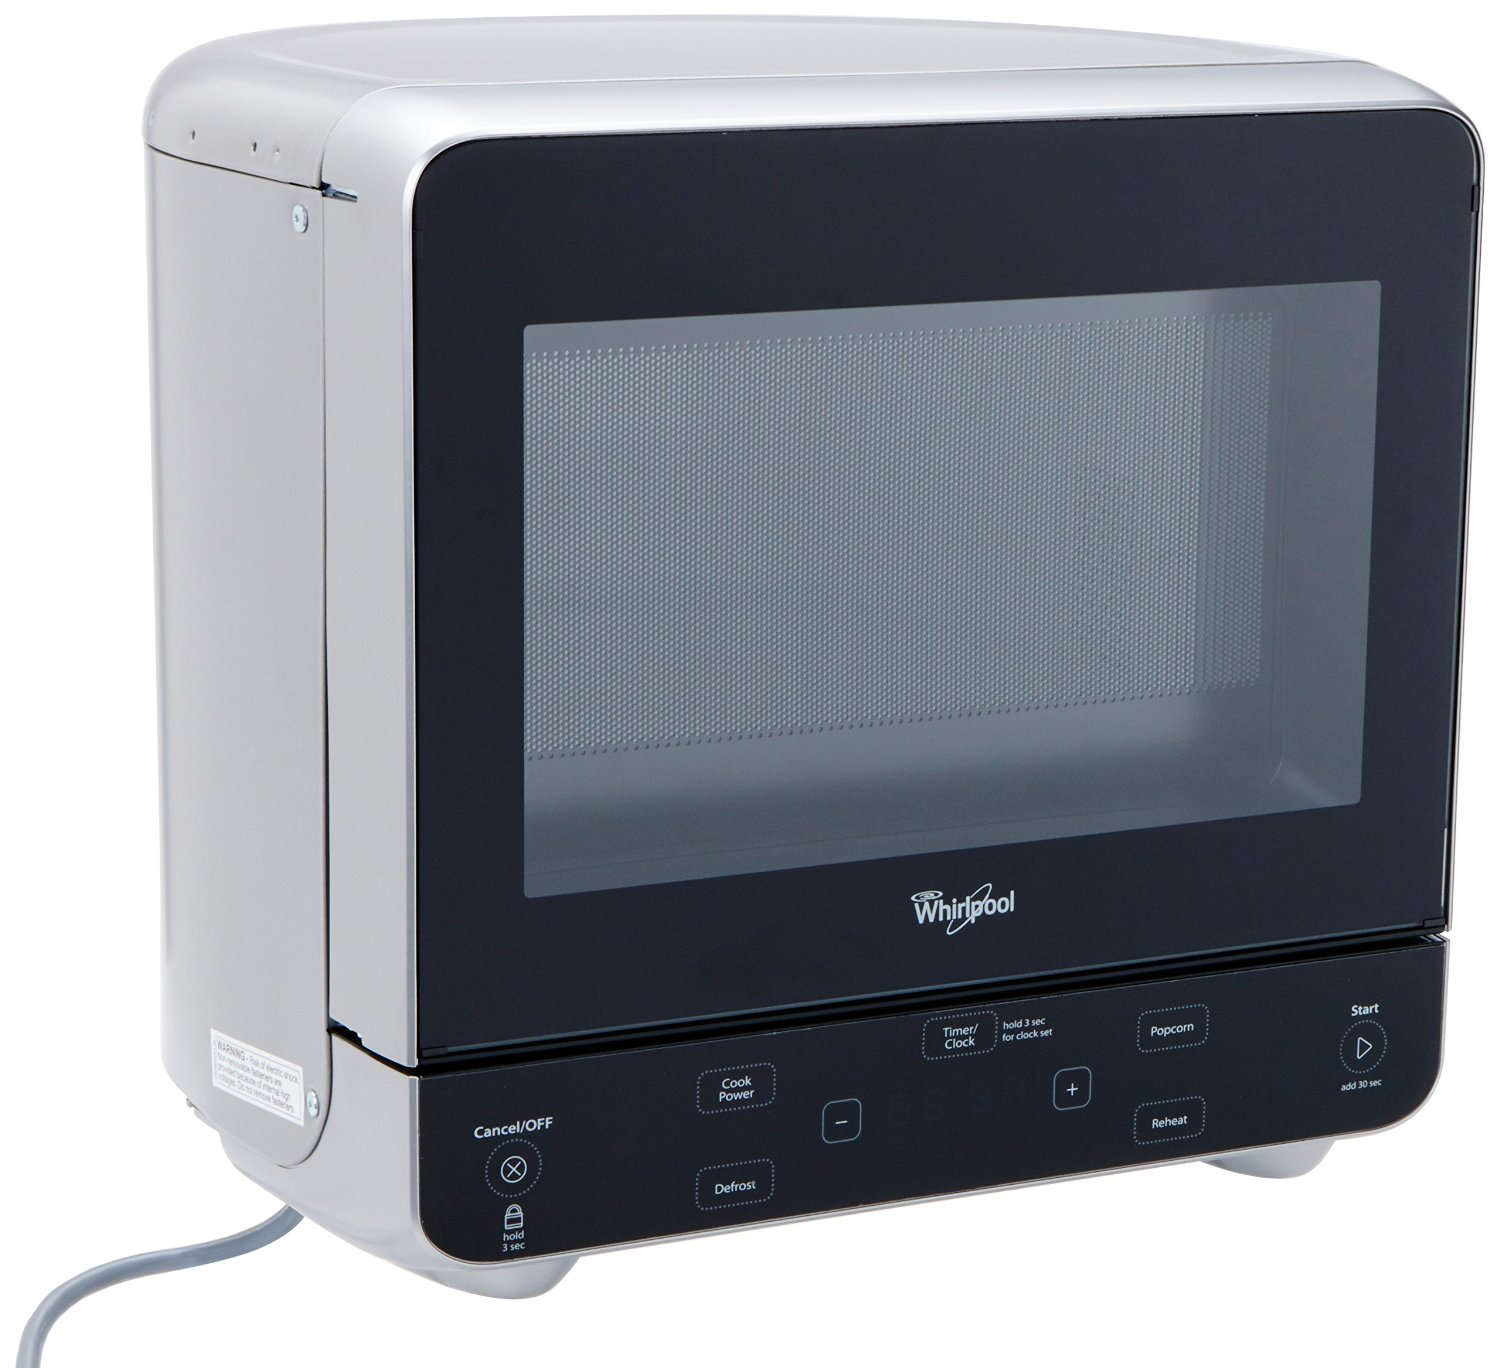 Best Small Microwave Oven For Office And Dorm